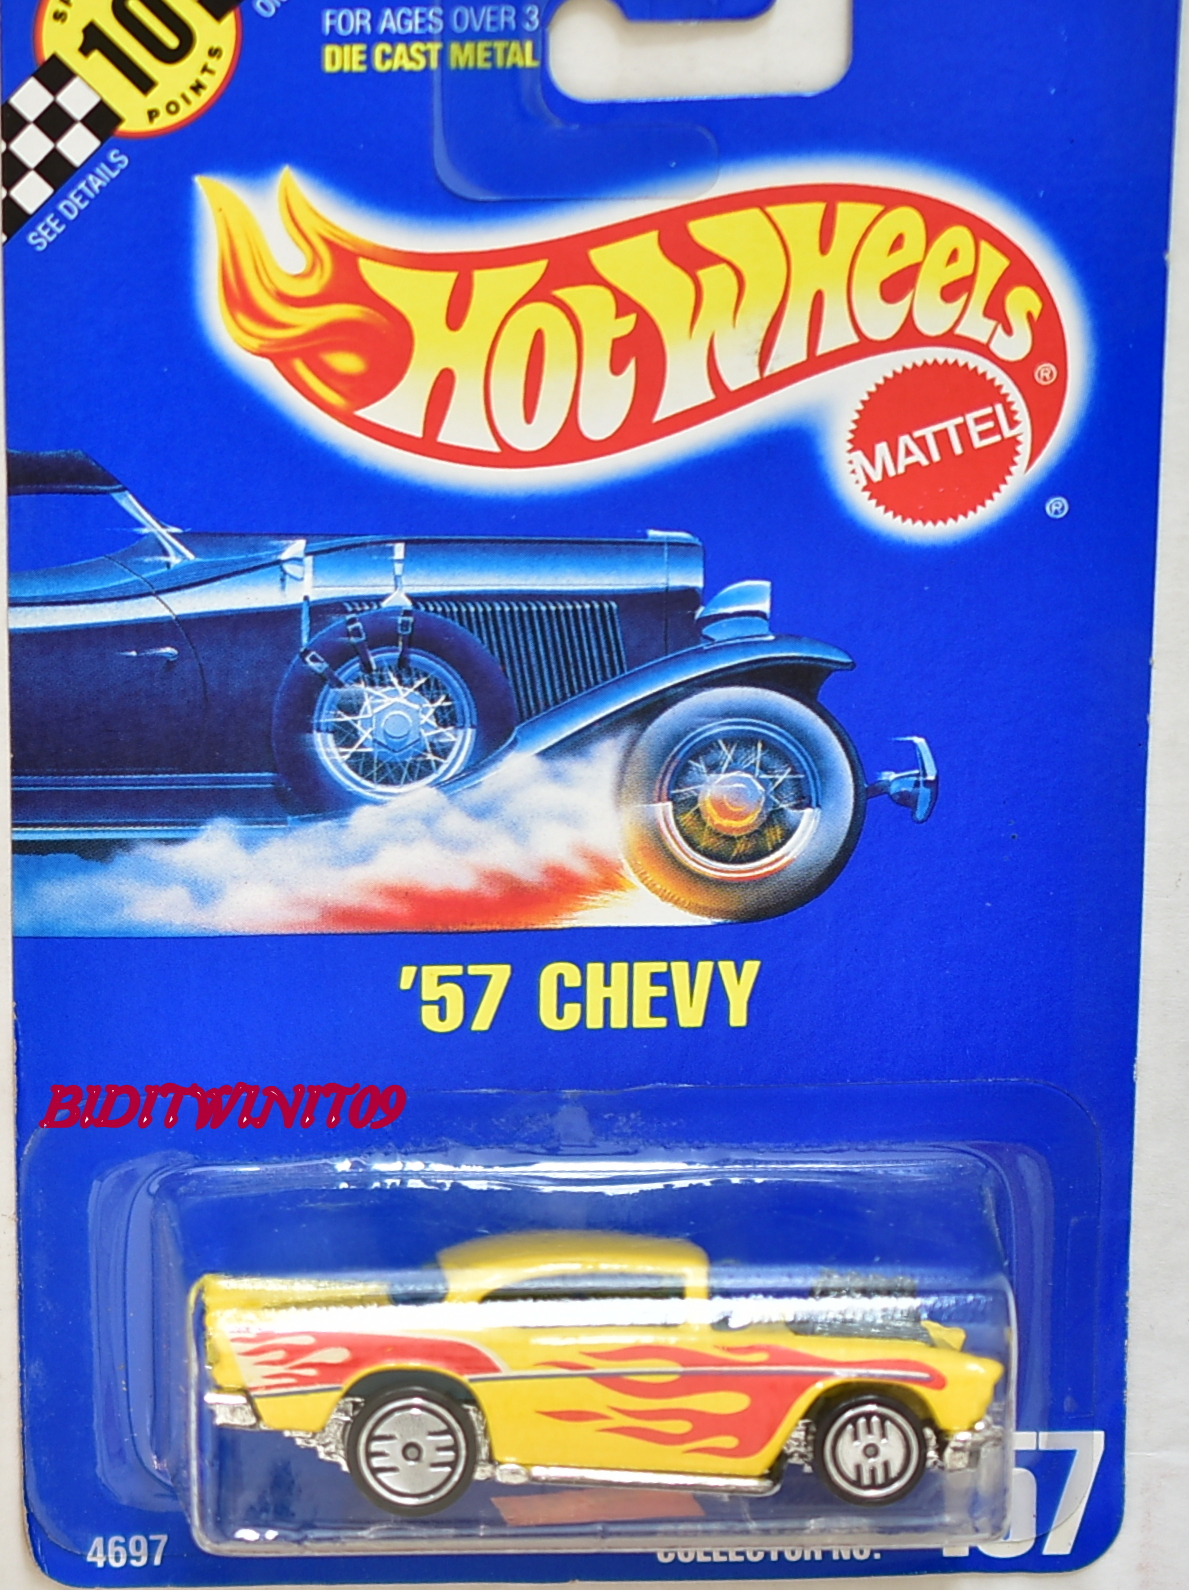 HOT WHEELS 1990 BLUE CARD '57 CHEVY NO 157 ON BASE